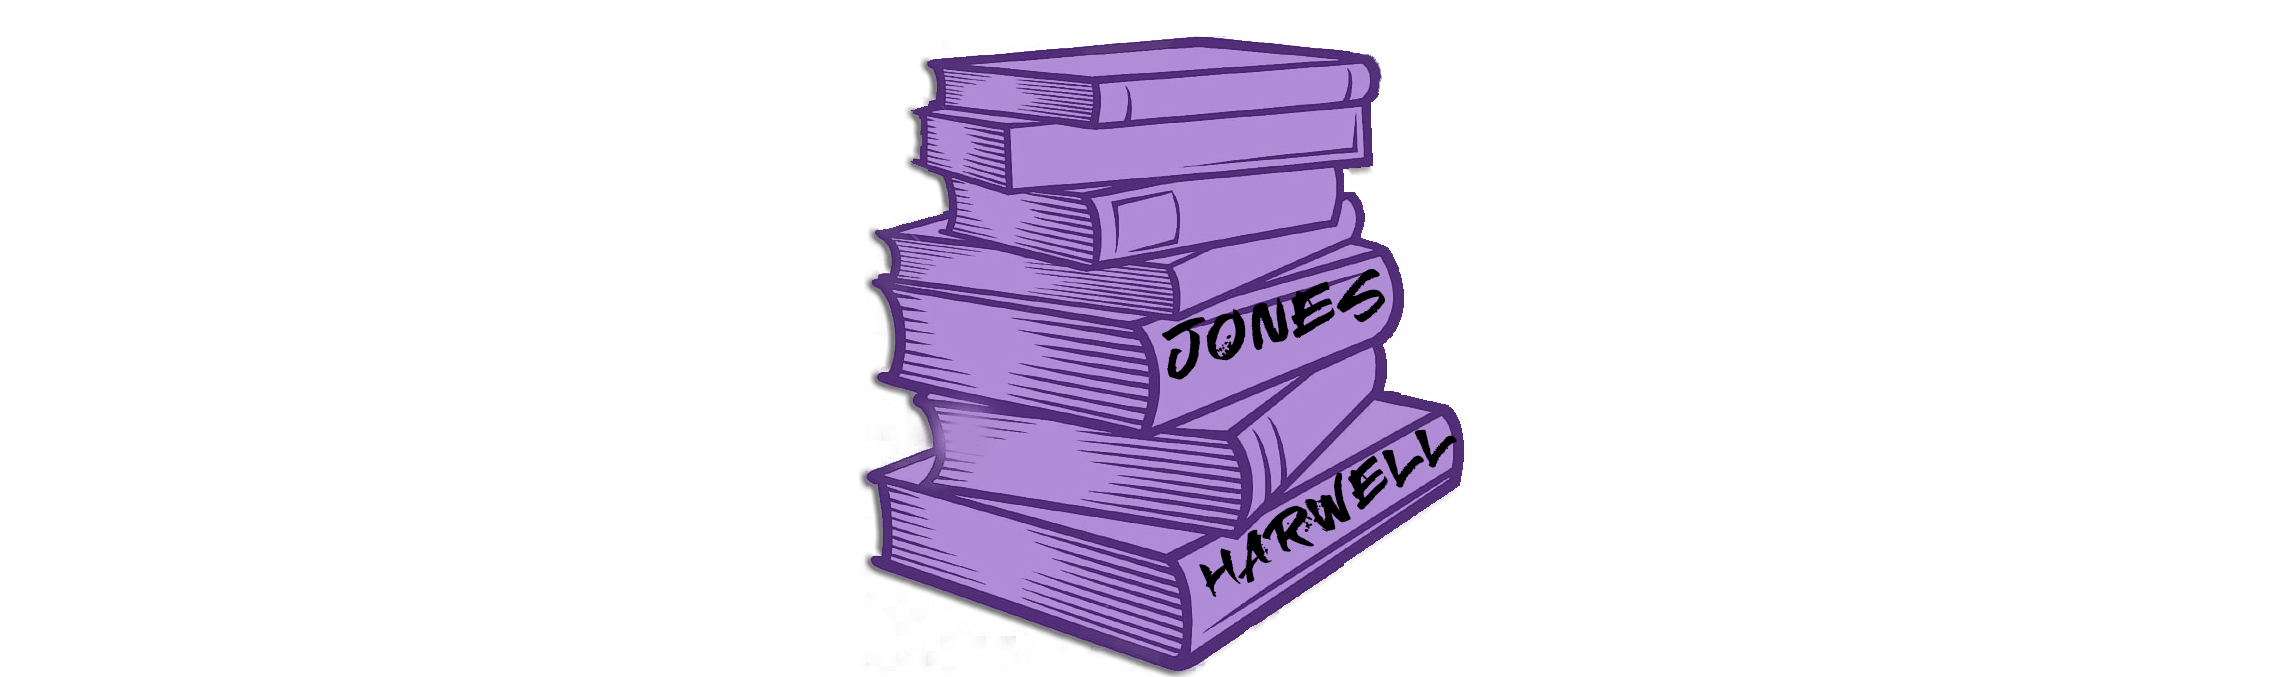 Jones Harwell ~ Redbaby Publishing, Inc.